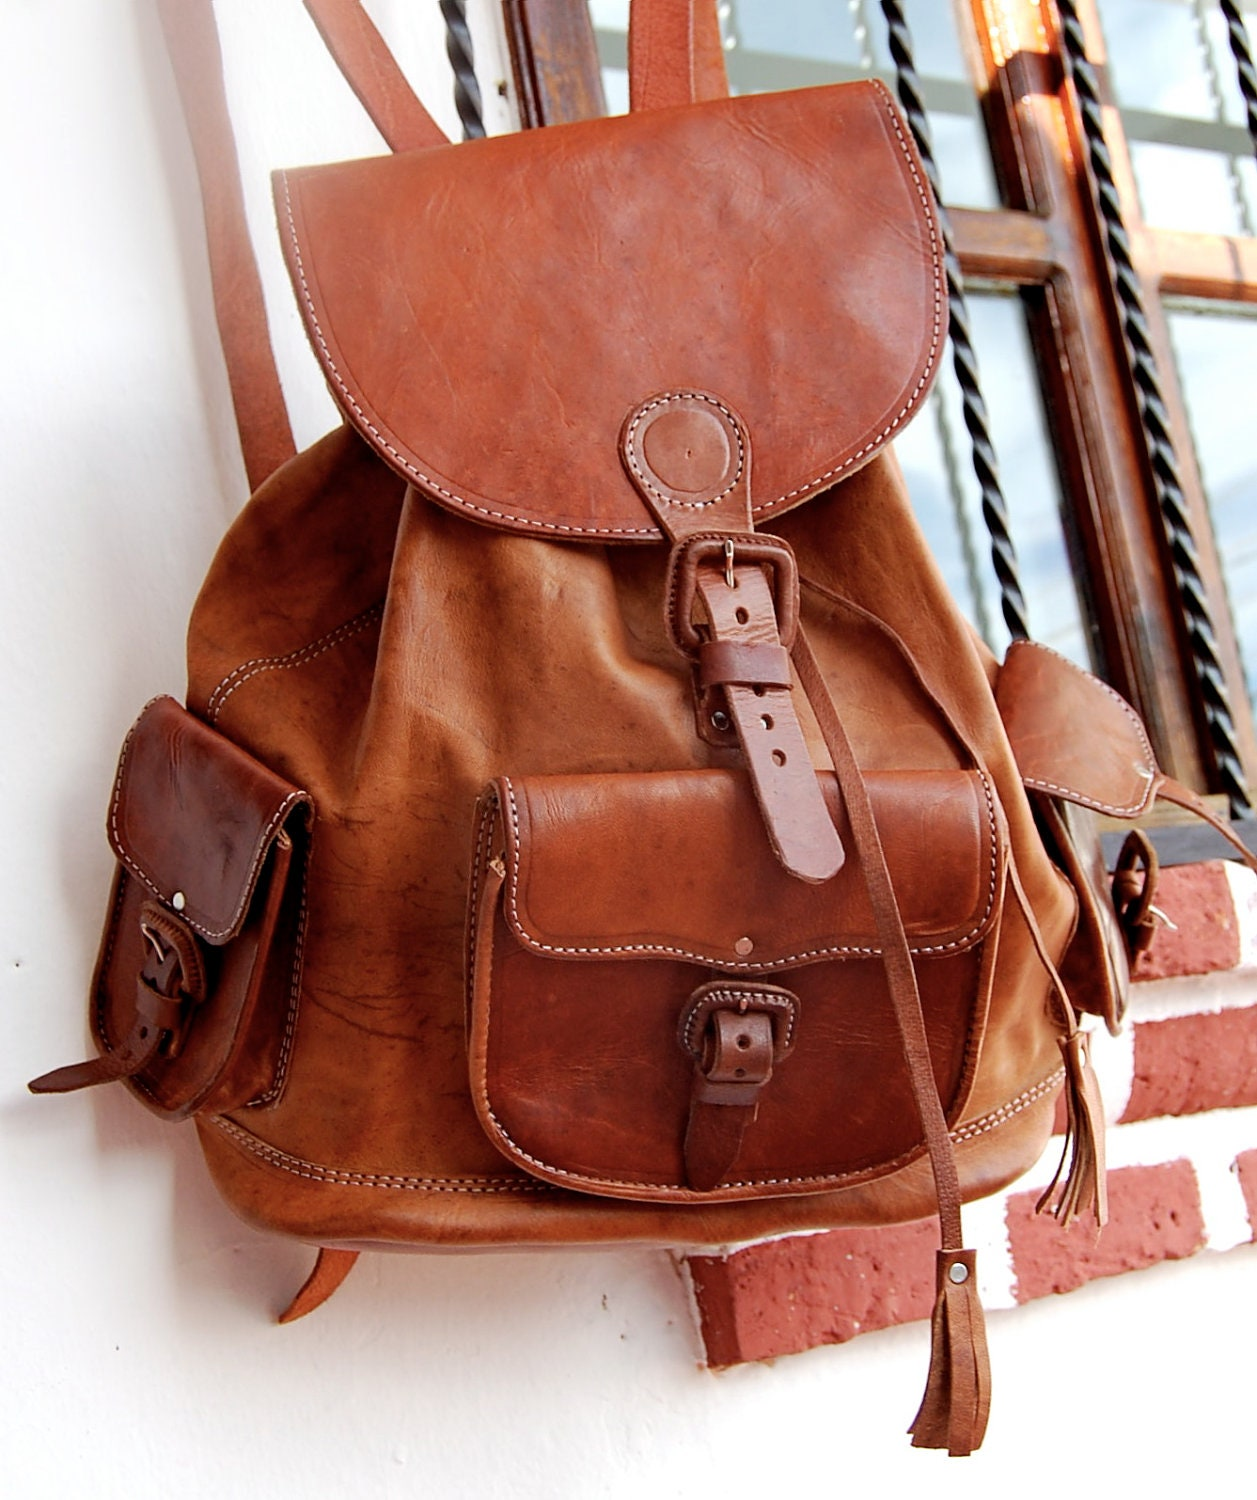 Brown Leather Bag / backpack HandMade Chiapas Mexico